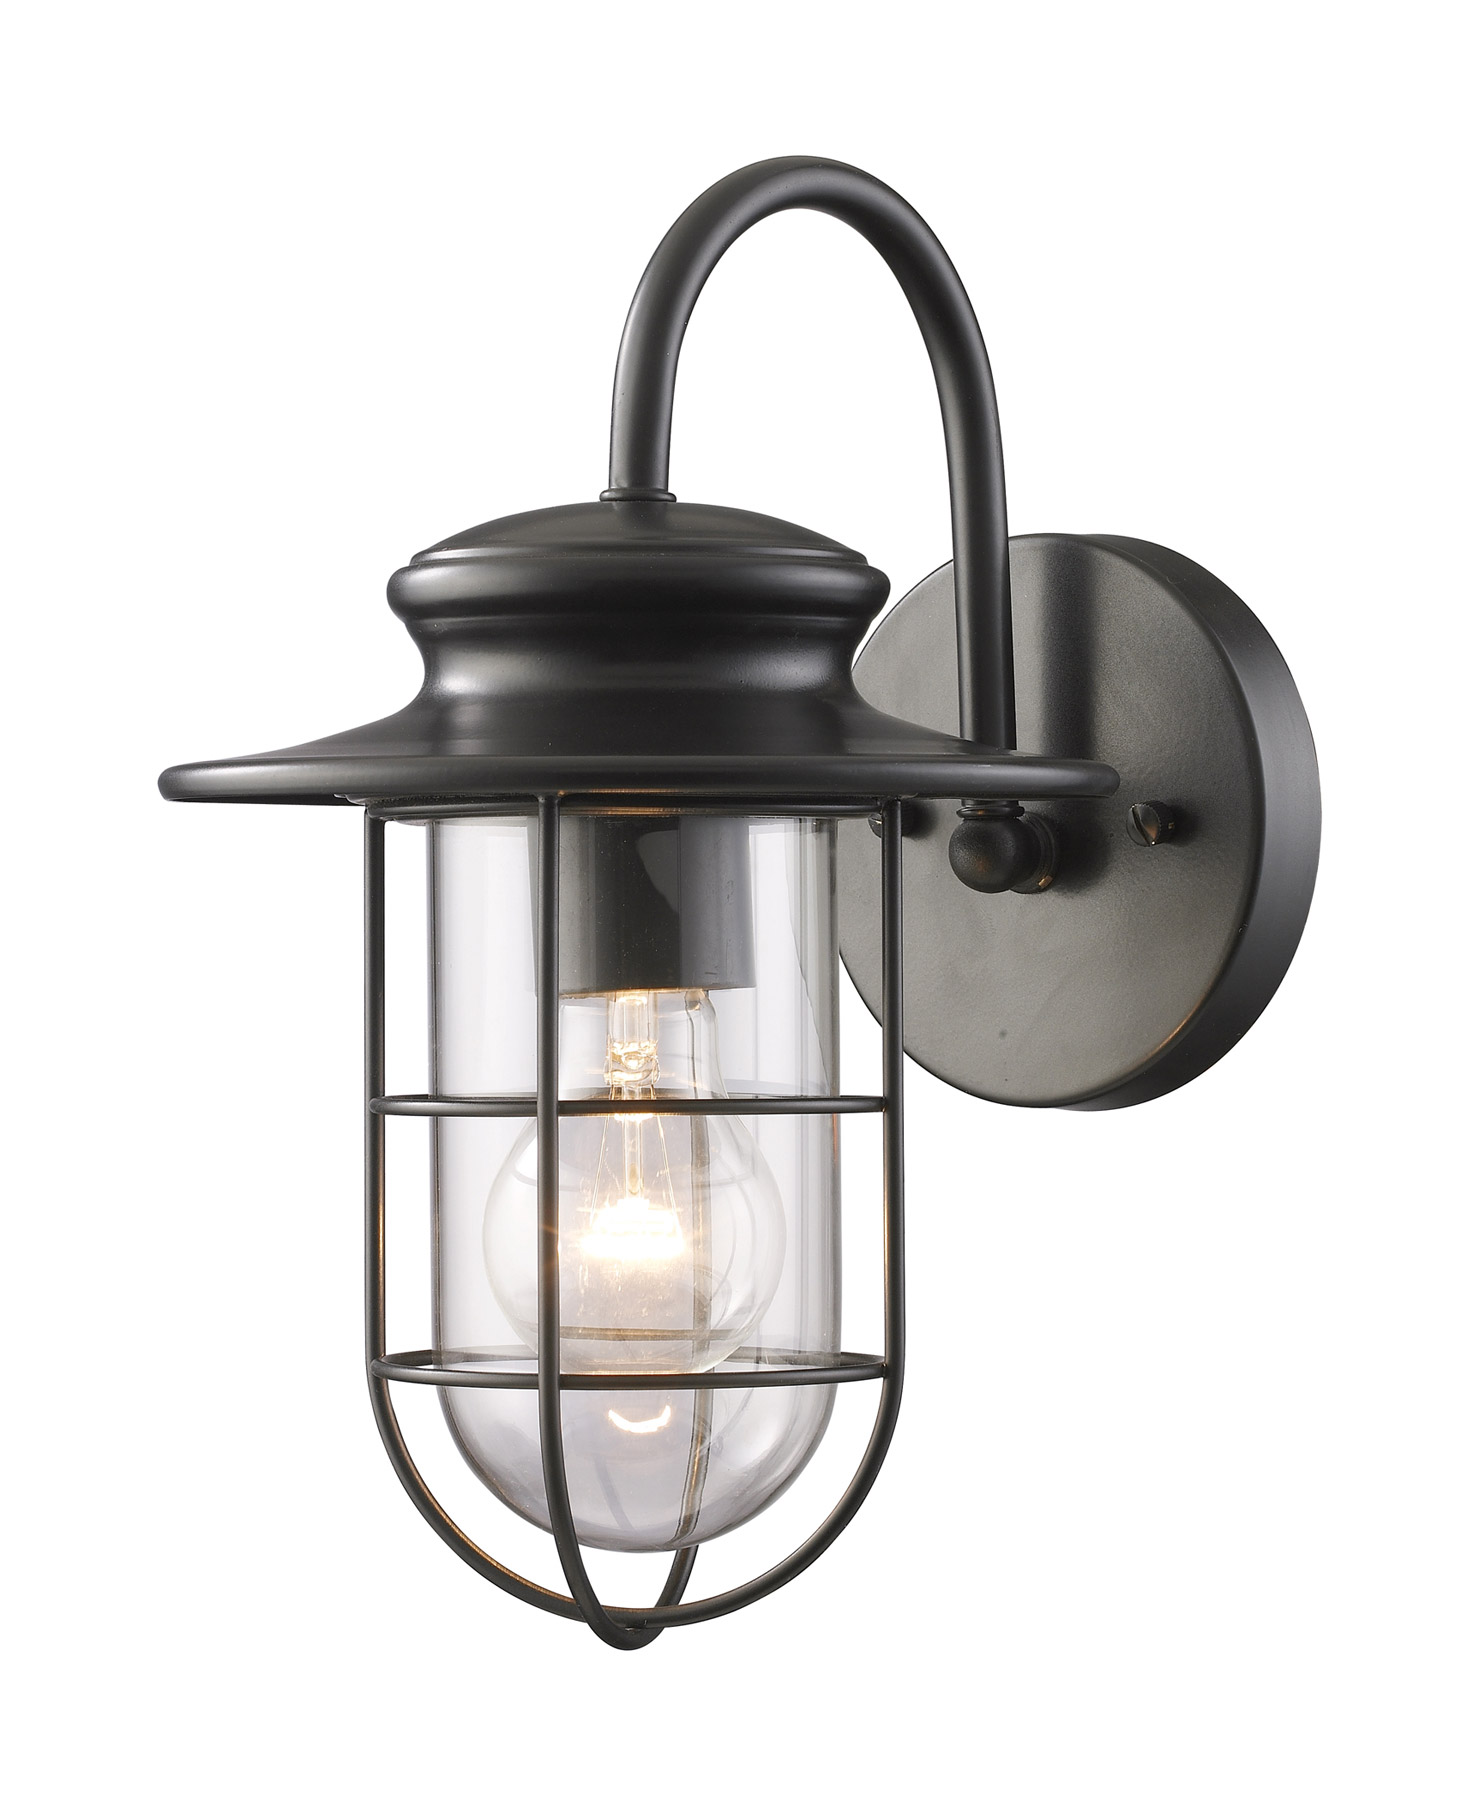 Elk lighting 42284 1 portside outdoor wall mount lantern for Outdoor porch light fixtures